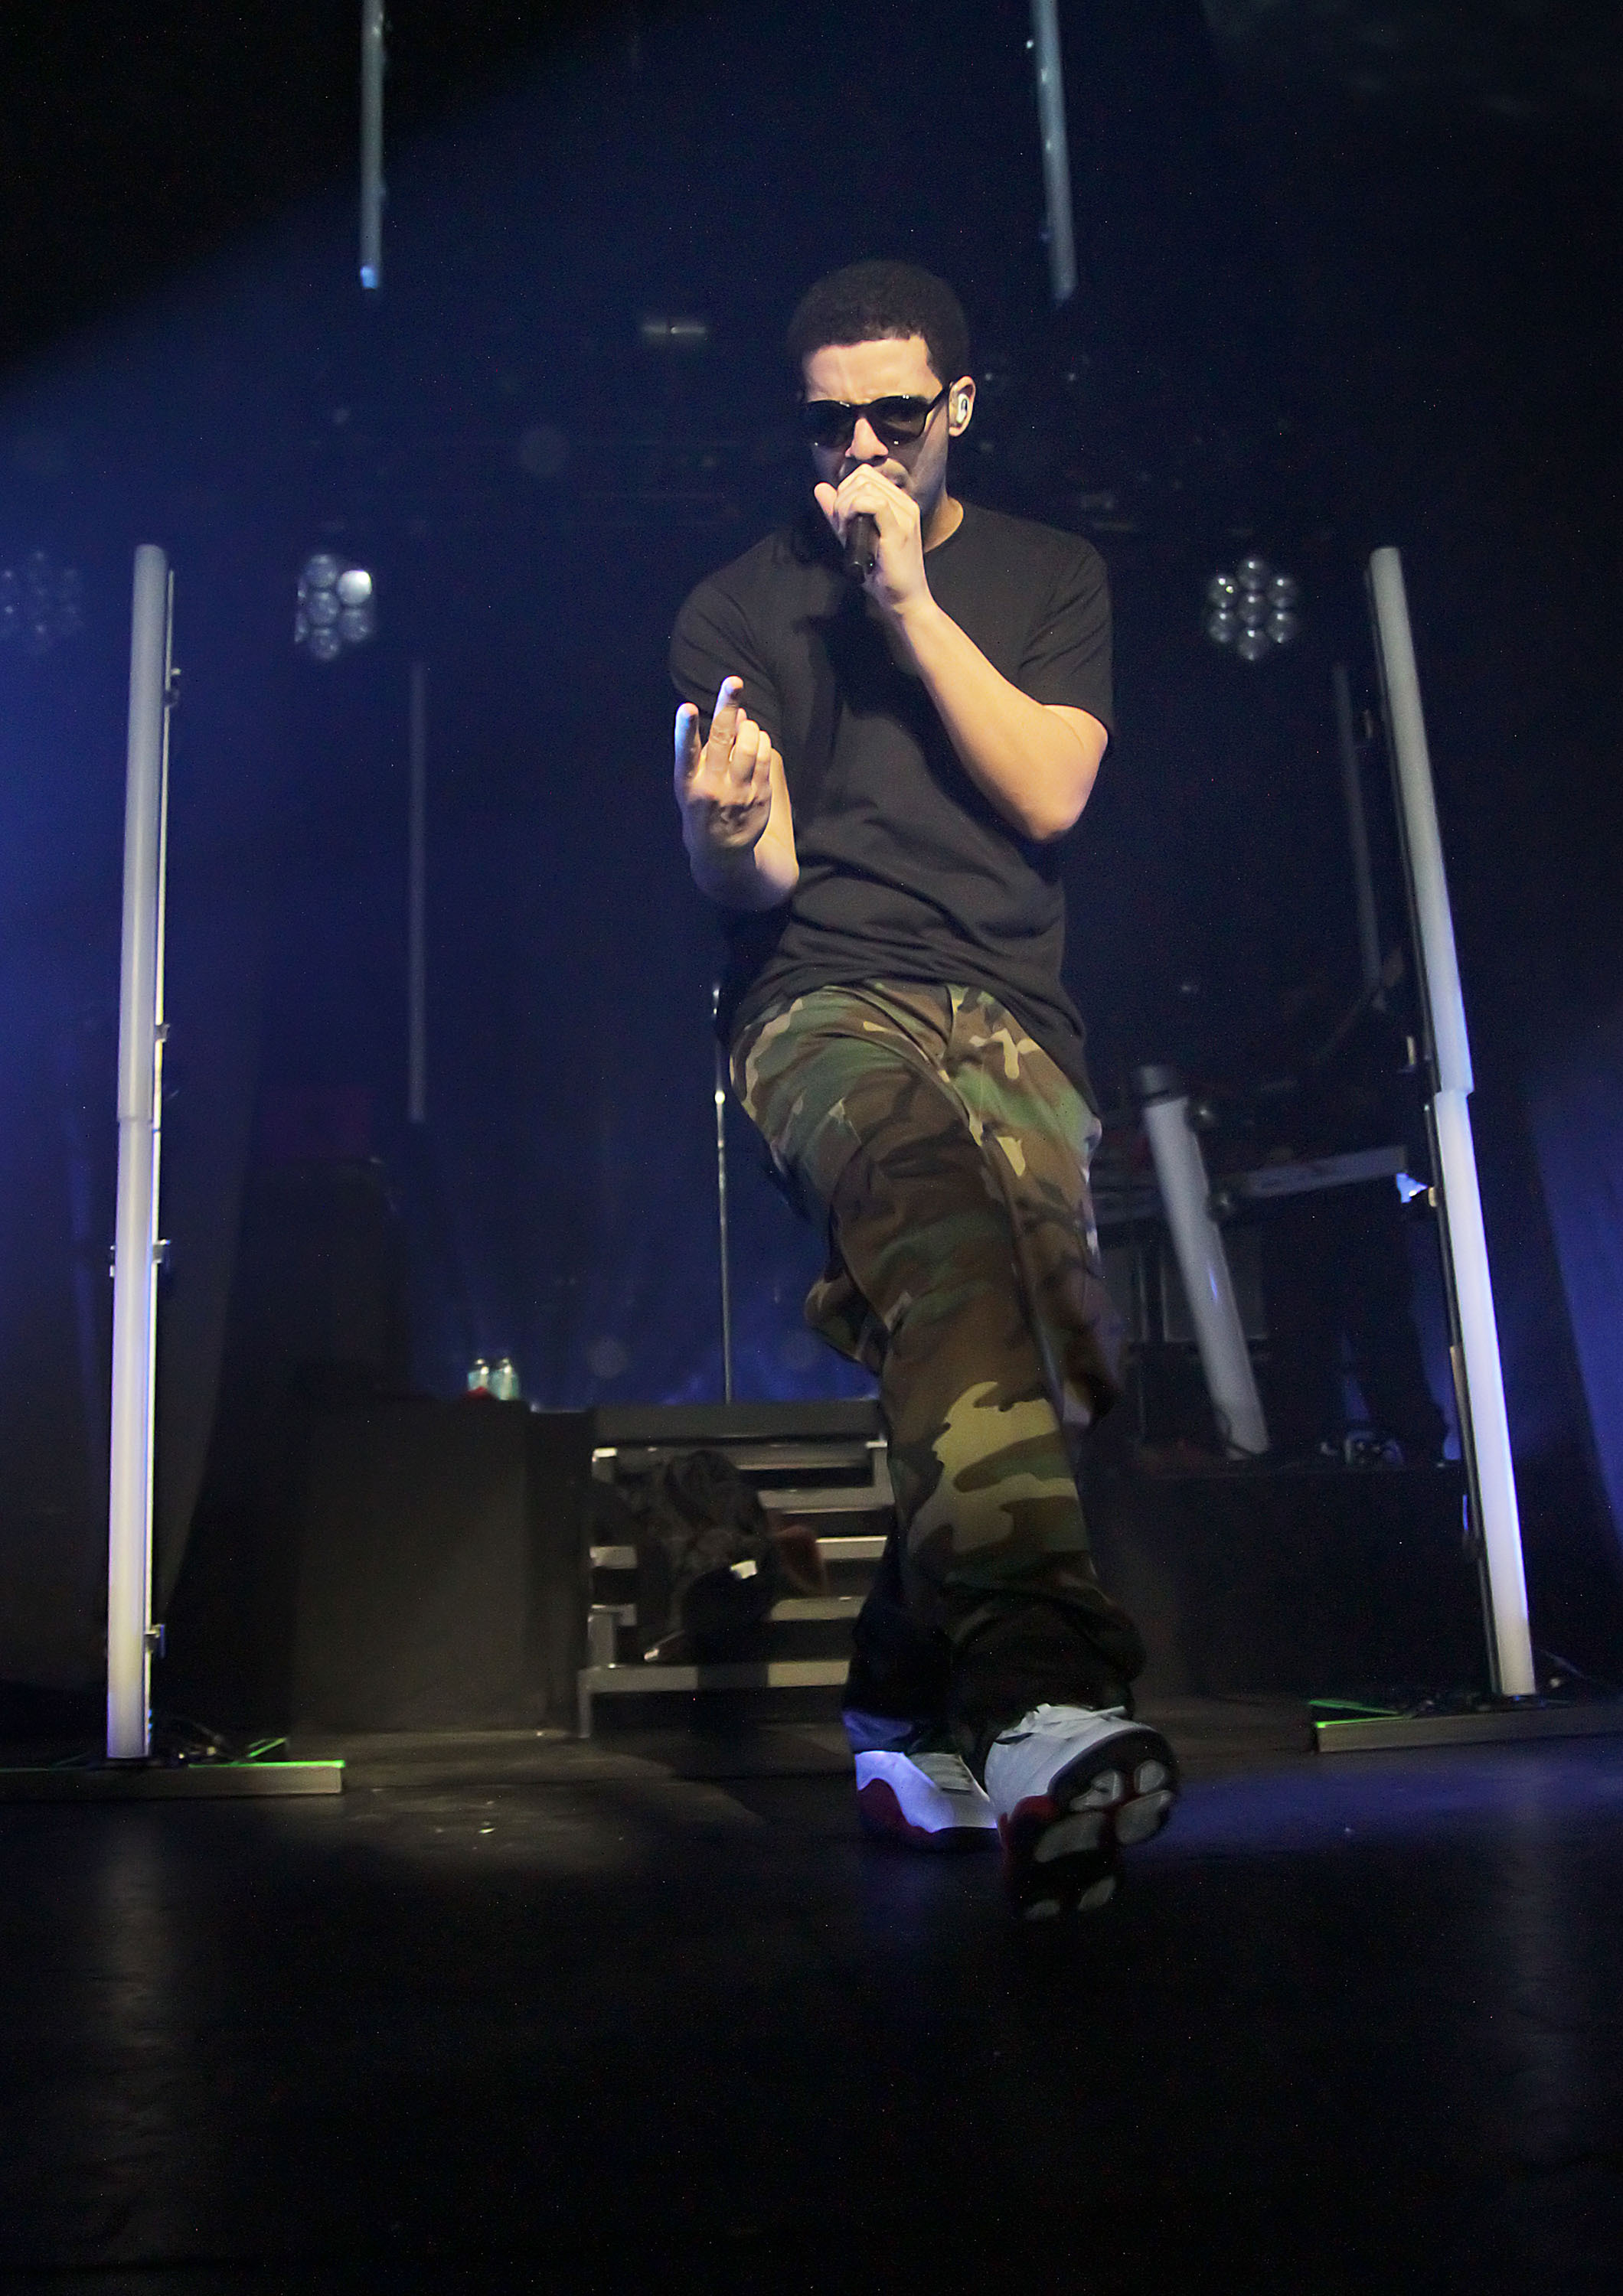 Canadian rapper, Drake, aka Aubrey Drake Graham performing at Manchester Apollo.                  Manchester, England - 11.01.11                                    Where: Manchester, United Kingdom                  When: 11 Jan 2011                  Credit: WENN